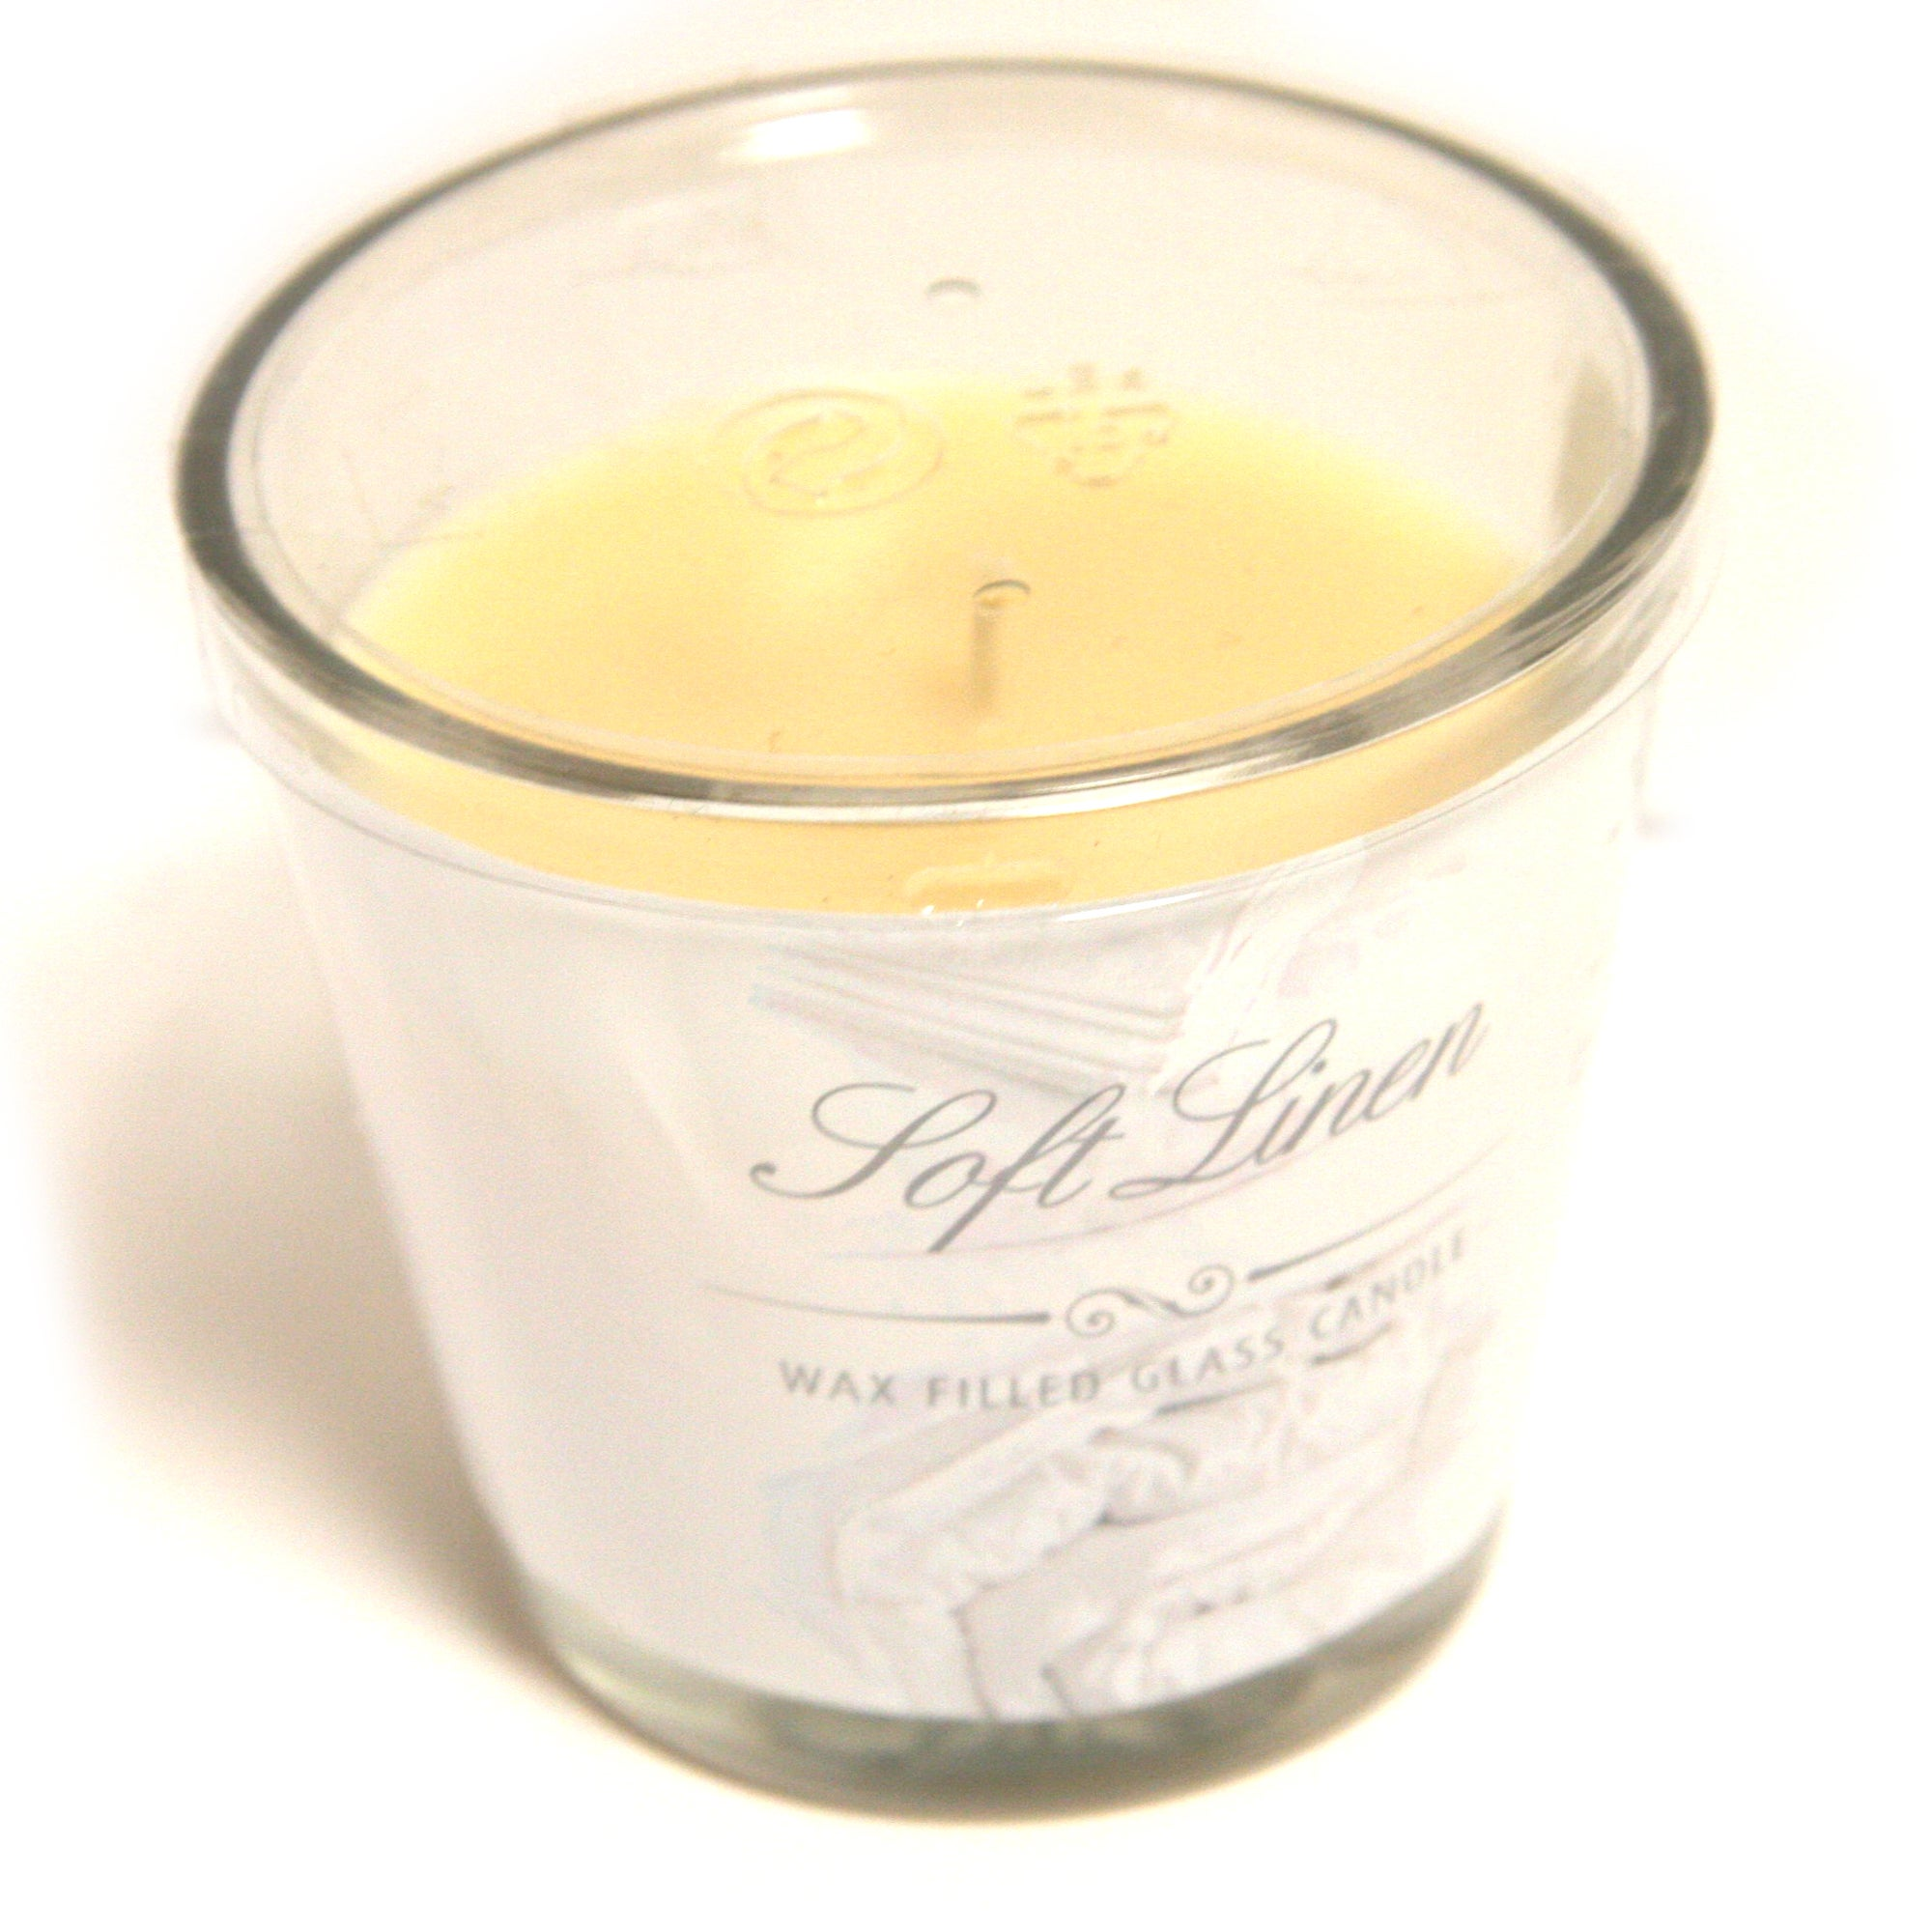 Soft Linen Wax Filled Glass Candle